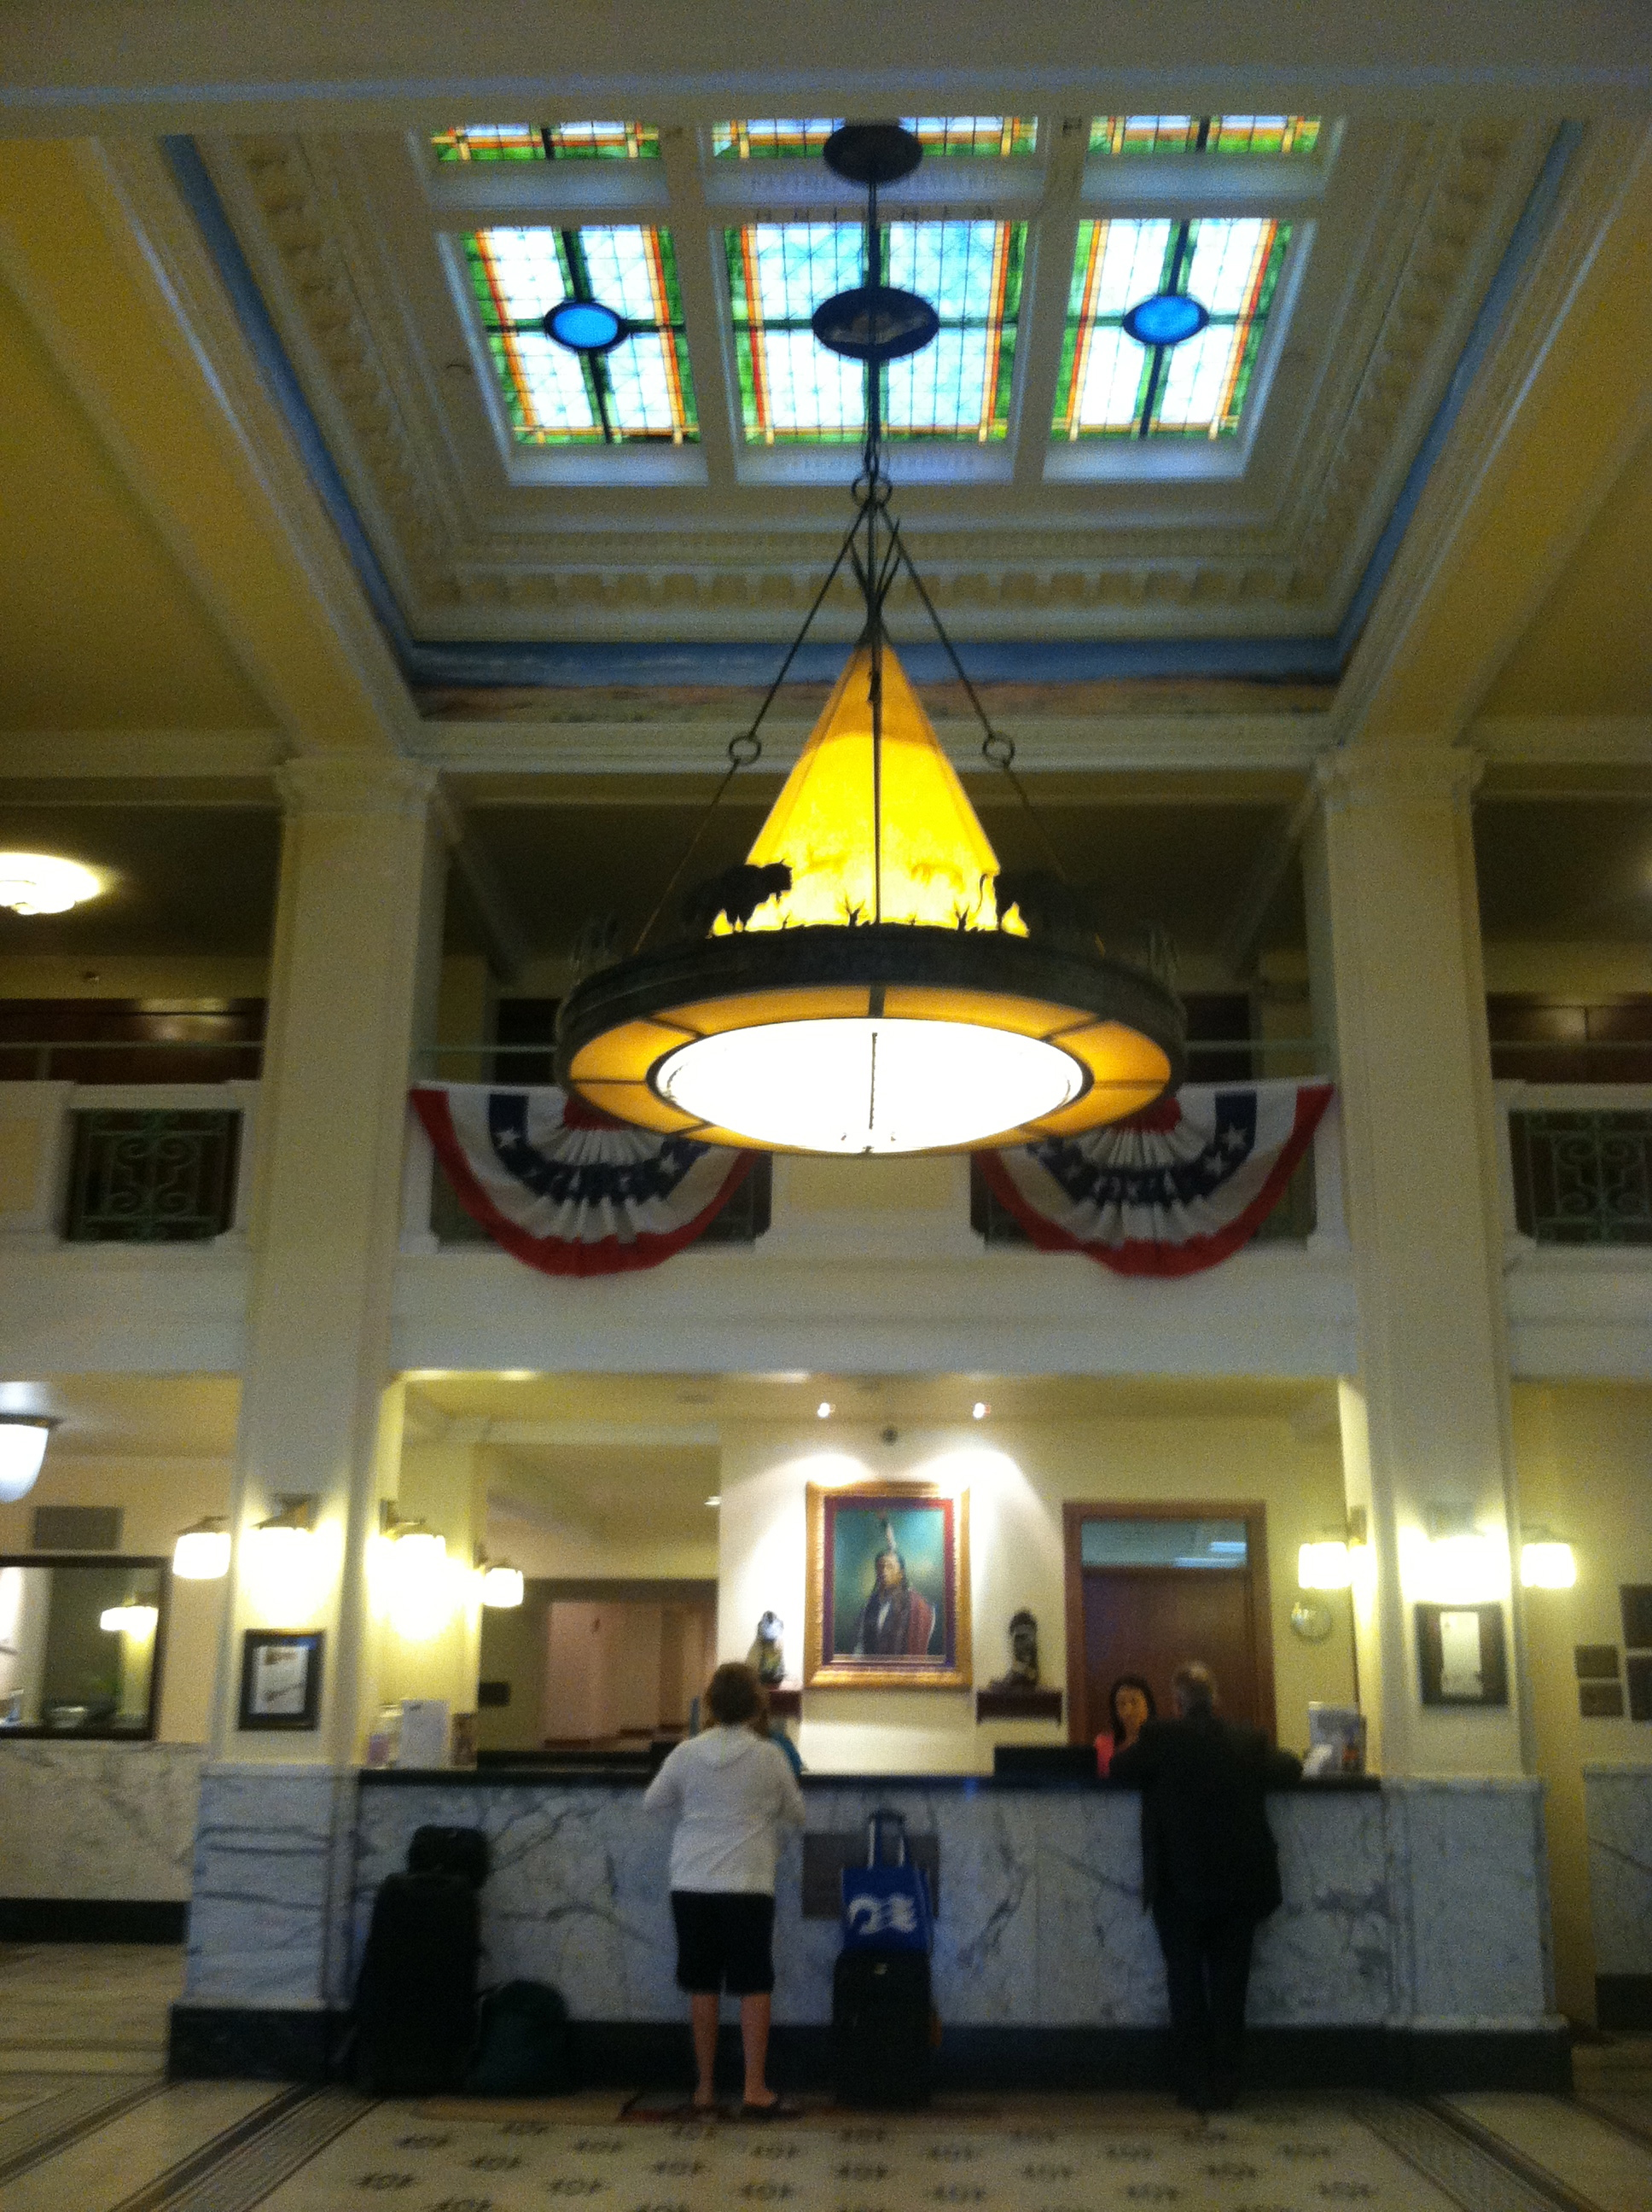 The lobby of The Historic Plains Hotel